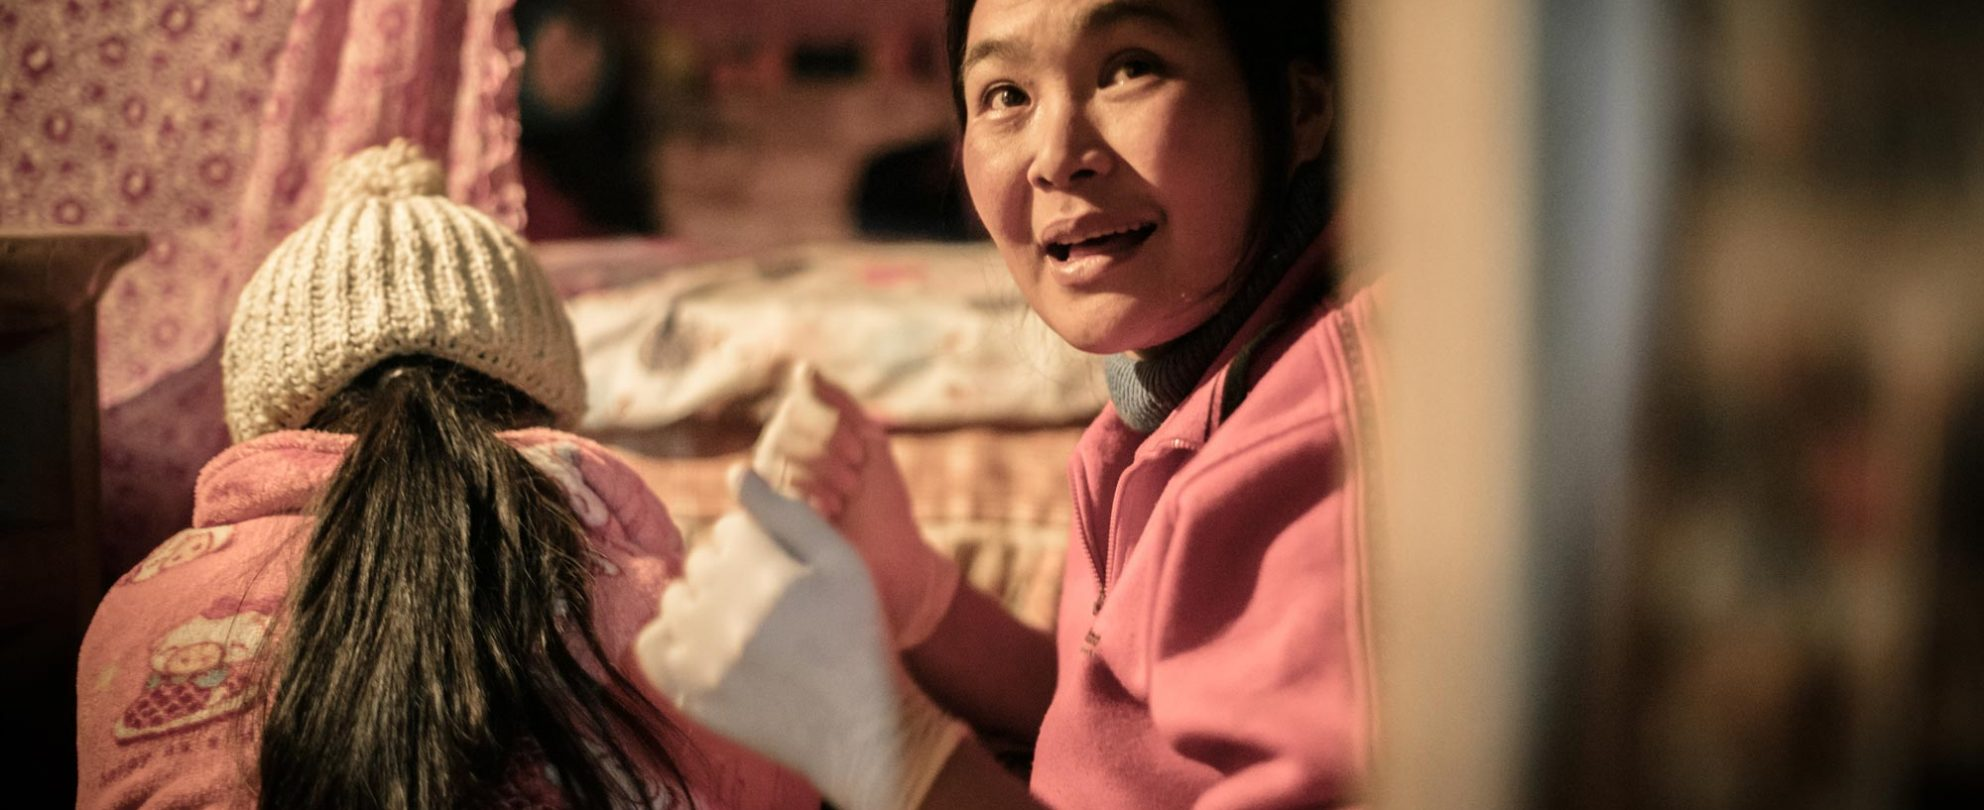 An HPA health worker with rubber gloves on helping another woman